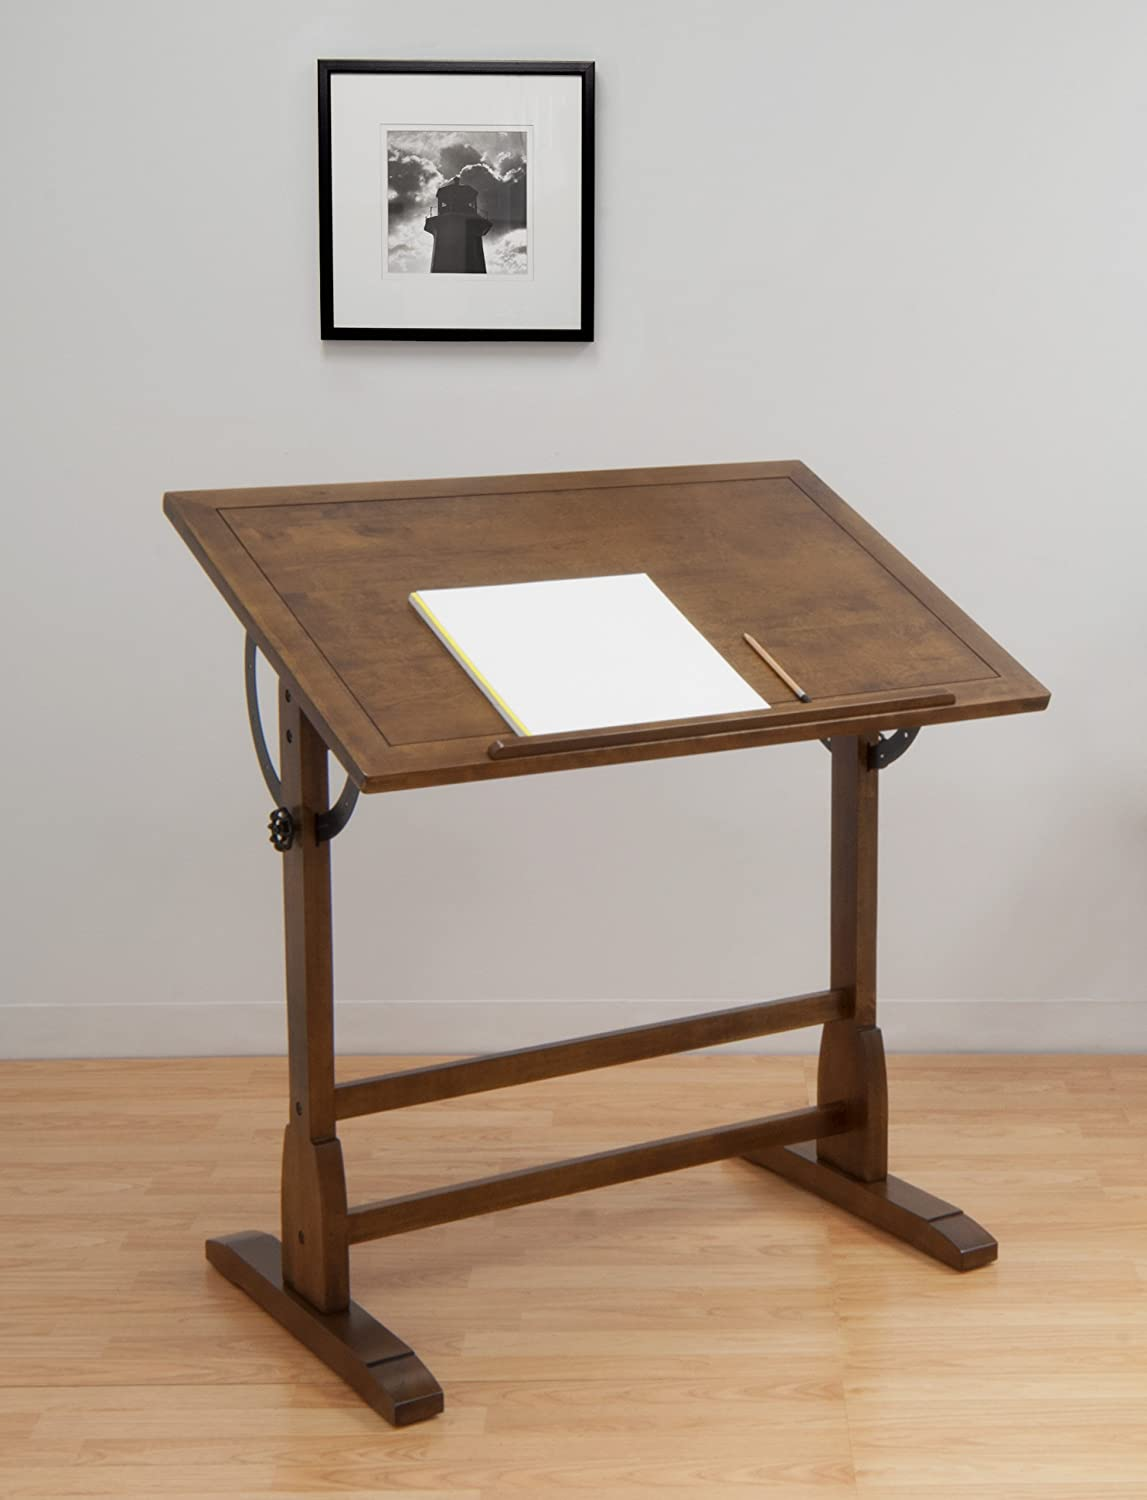 Drafting Table Design Studio Designs 13304 Vintage Drafting Table Rustic Oak